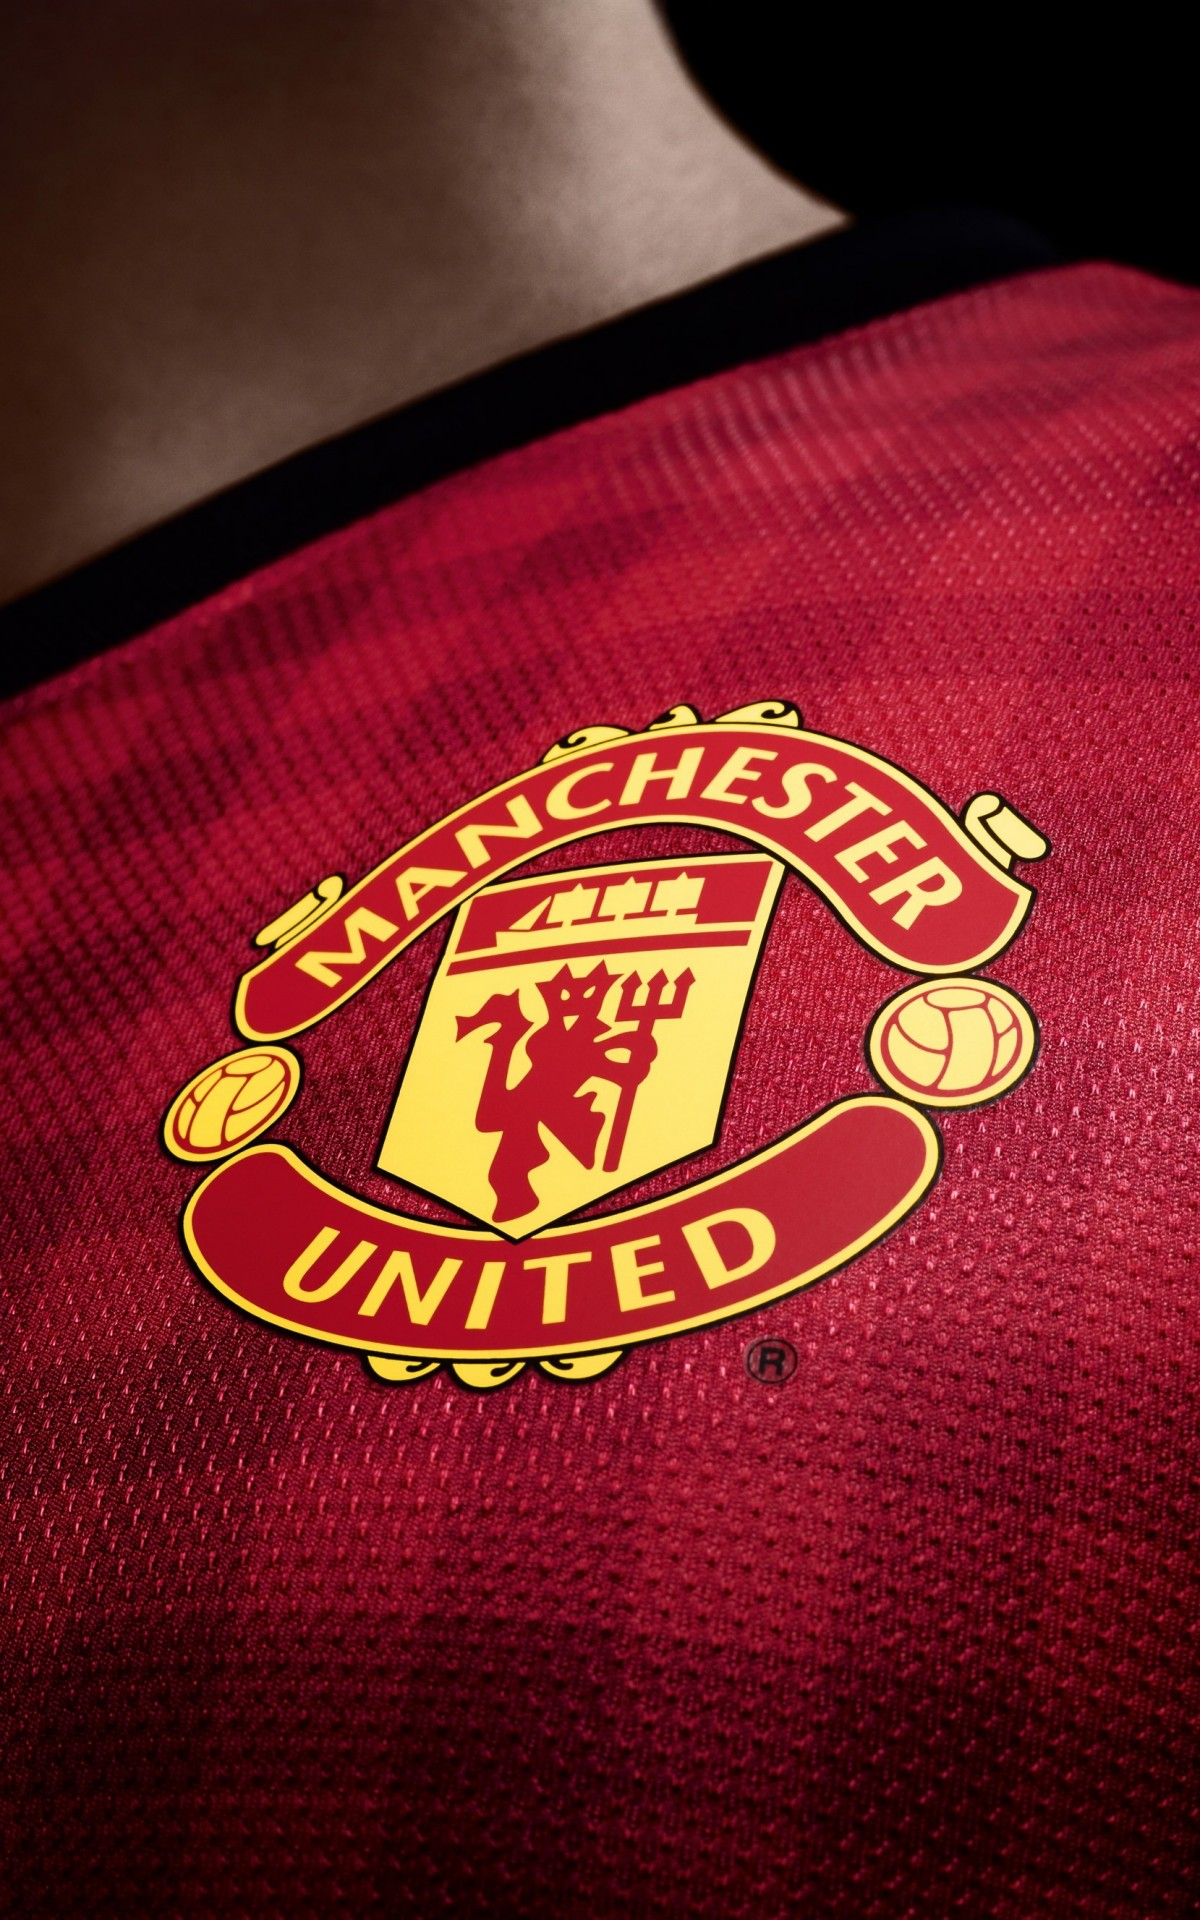 Manchester United Logo Shirt Wallpaper for Amazon Kindle Fire HDX